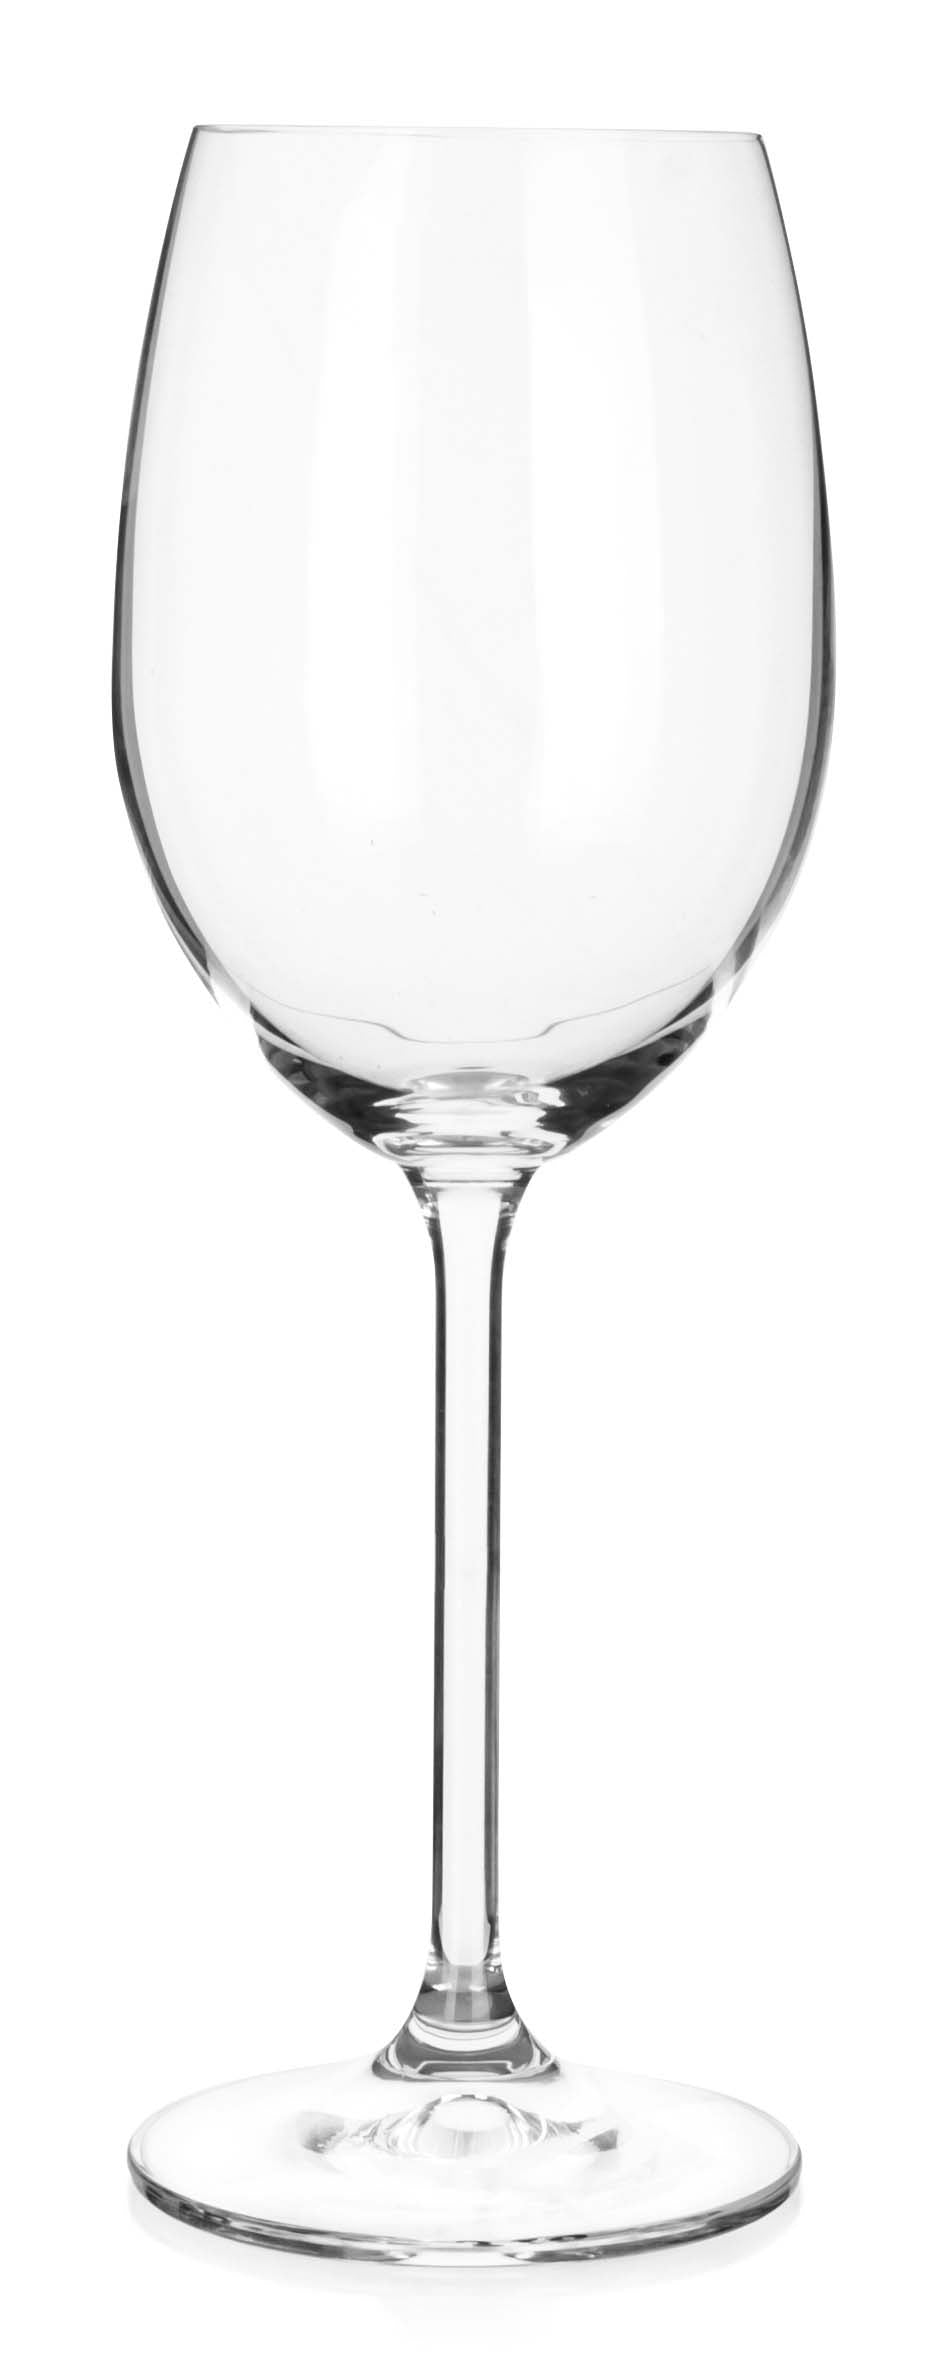 Maison Forine - Veronica White Wine,Wine Glass,Maison Forine Crystal By Bohemia